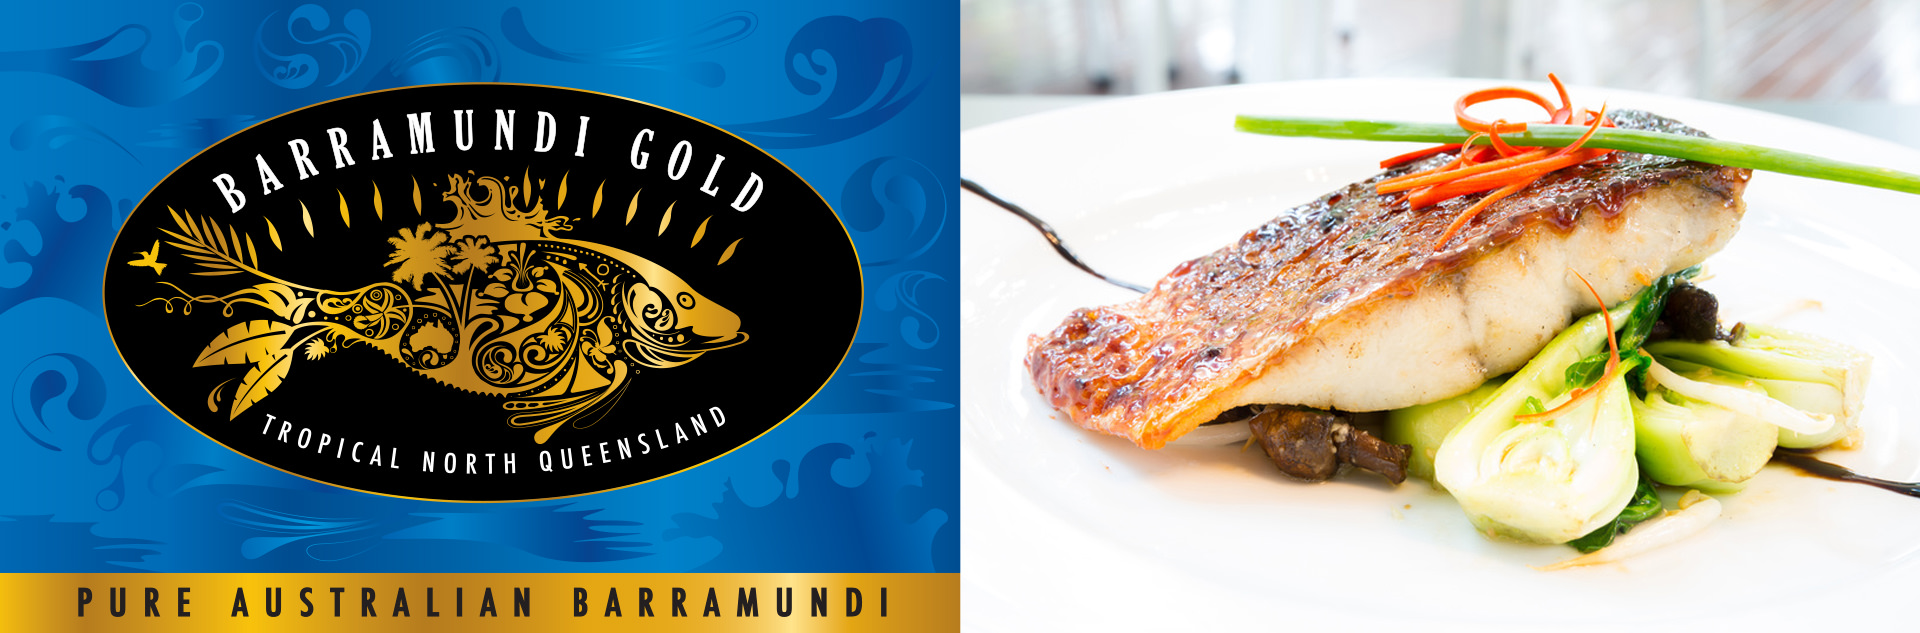 Australian-barramundi-gold-logo-fish-vegetables